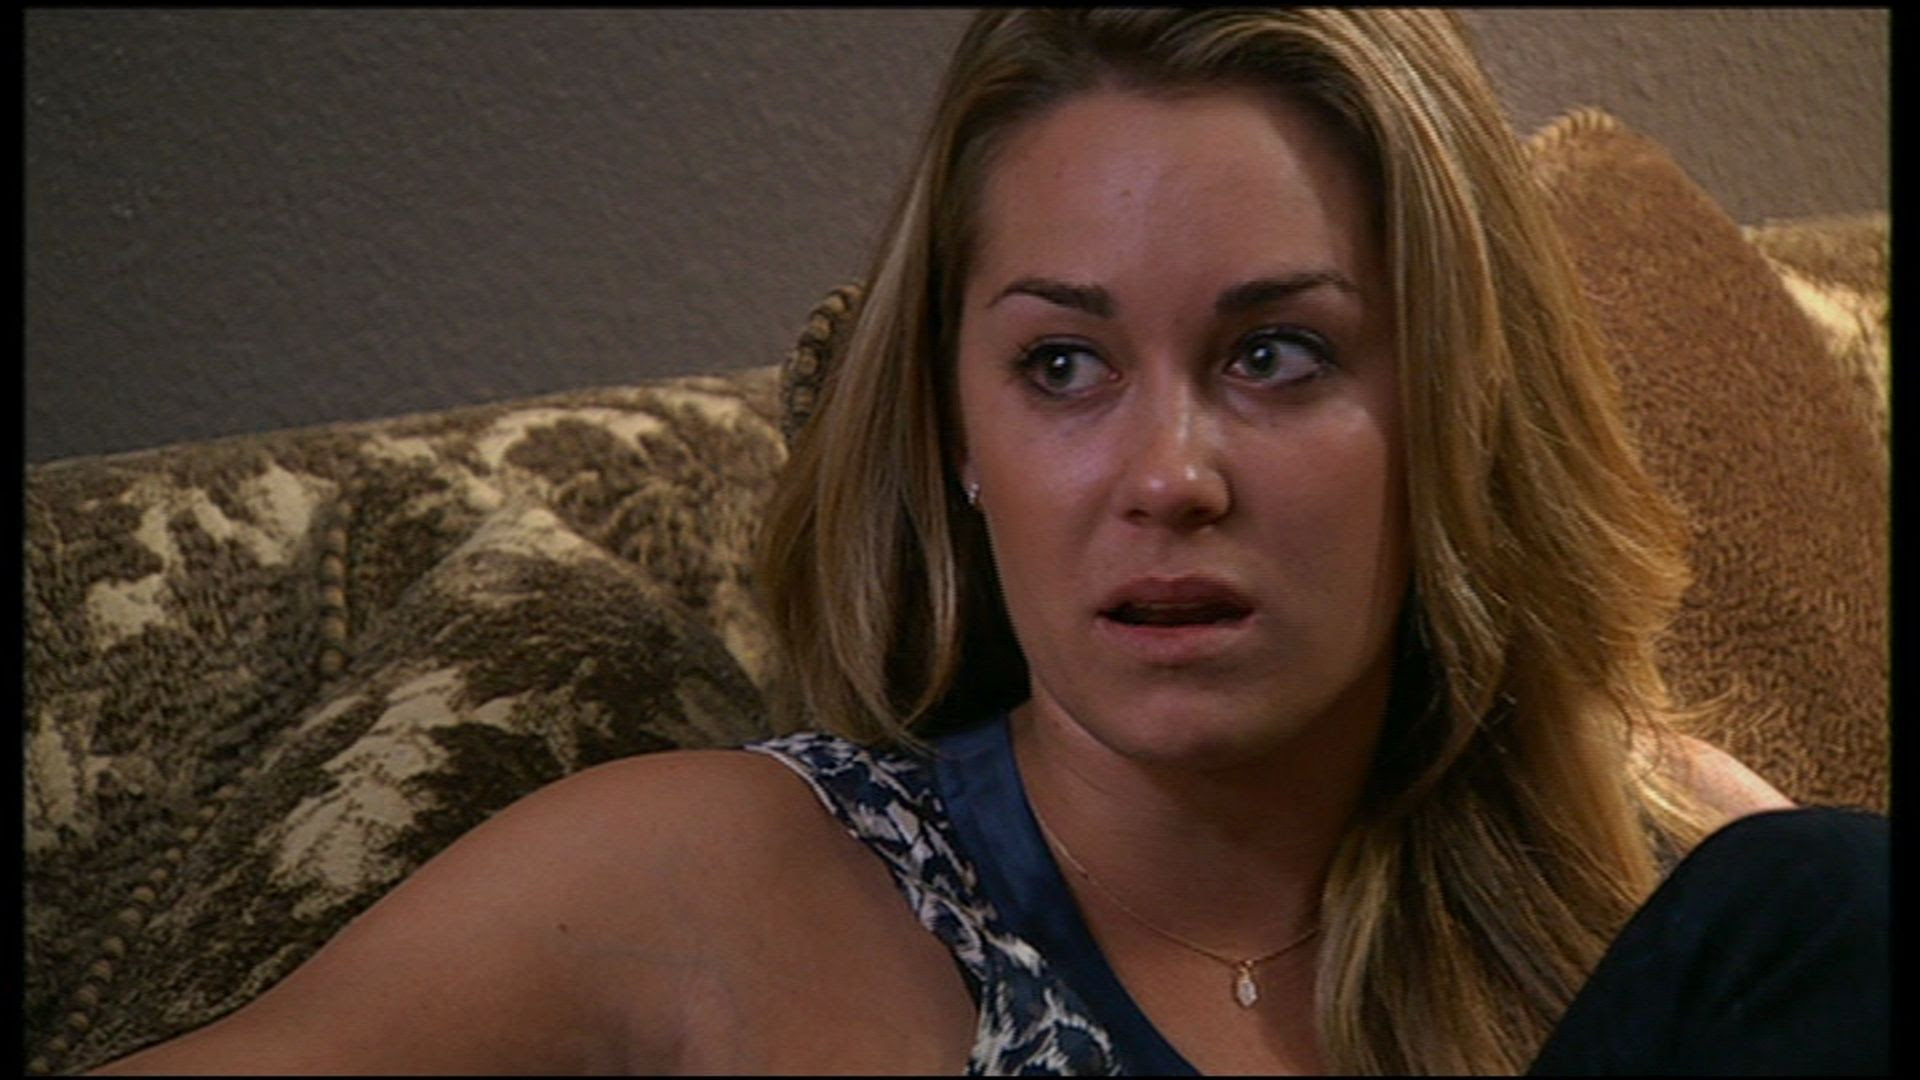 Lauren Conrad Images The Hills 2x07 With Friends Like These Hd